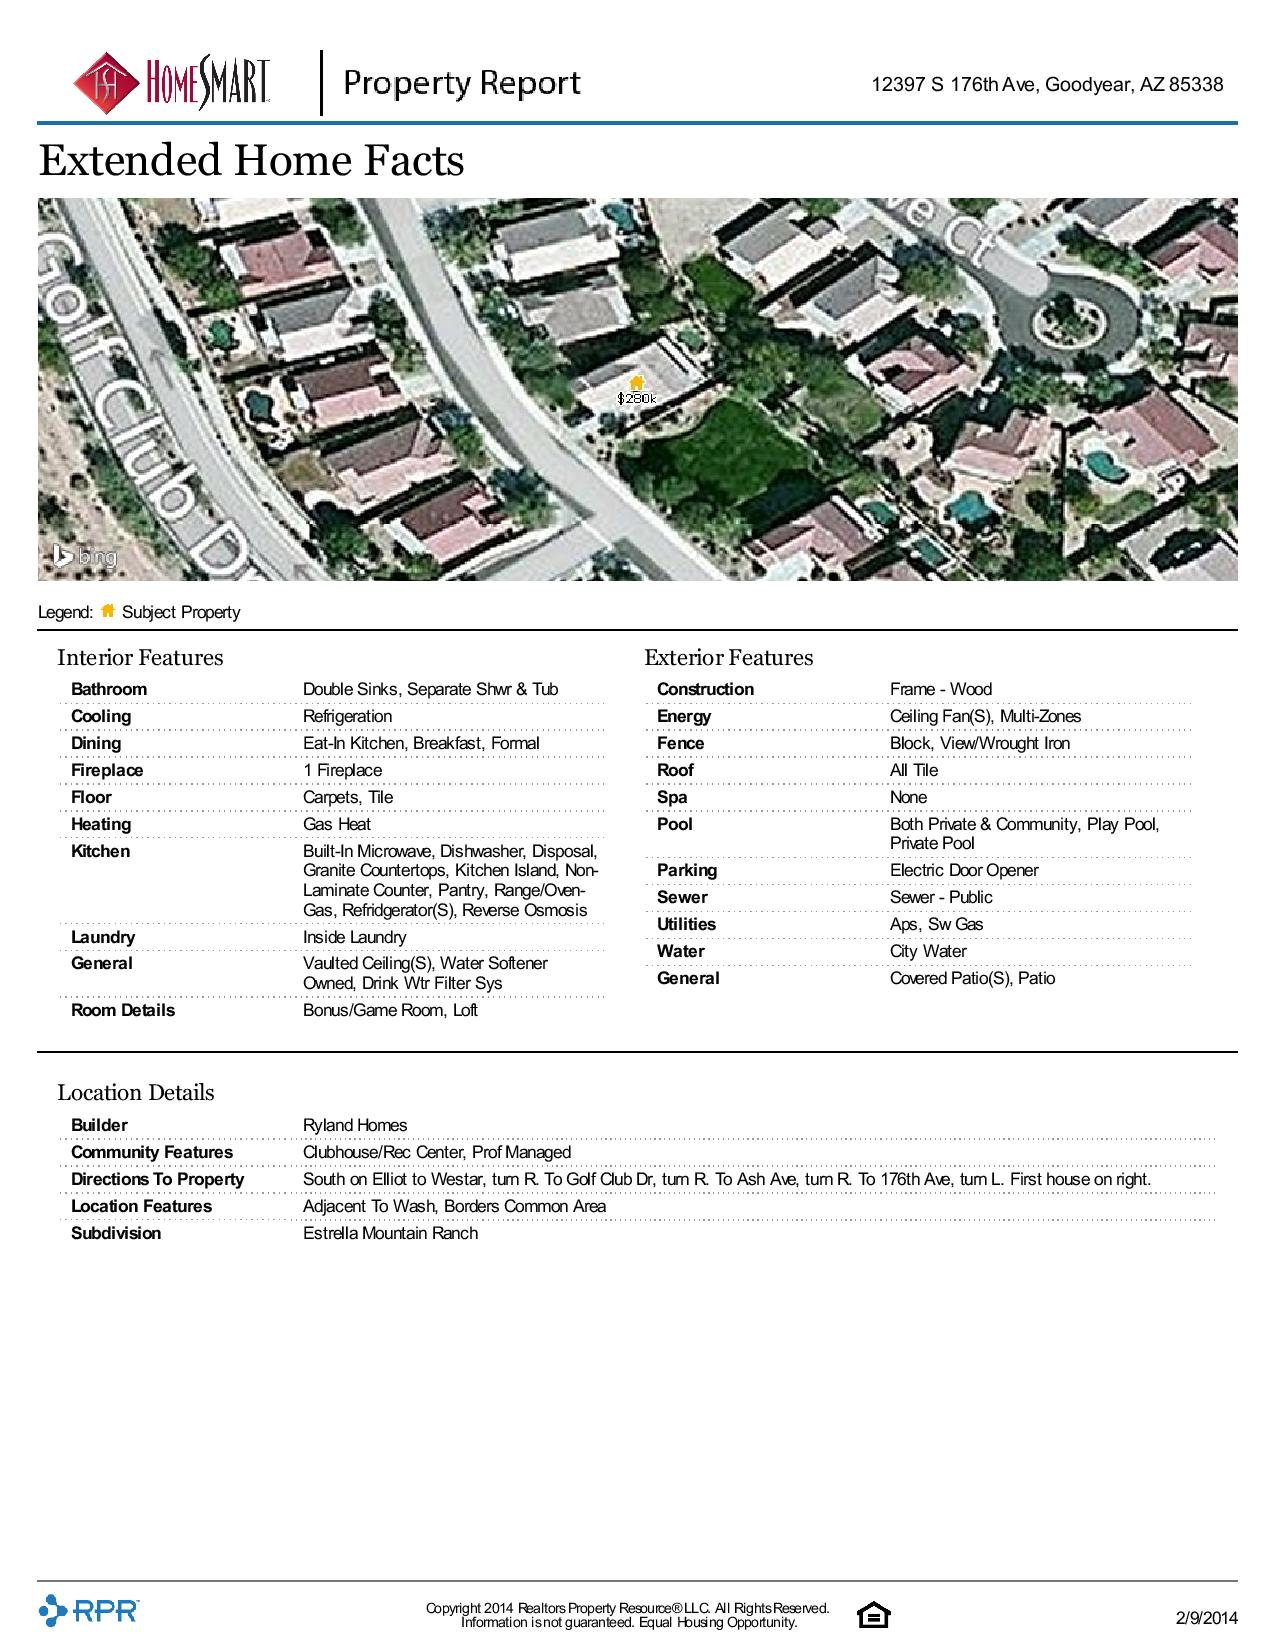 12397-S-176th-Ave-Goodyear-AZ-85338-page-004